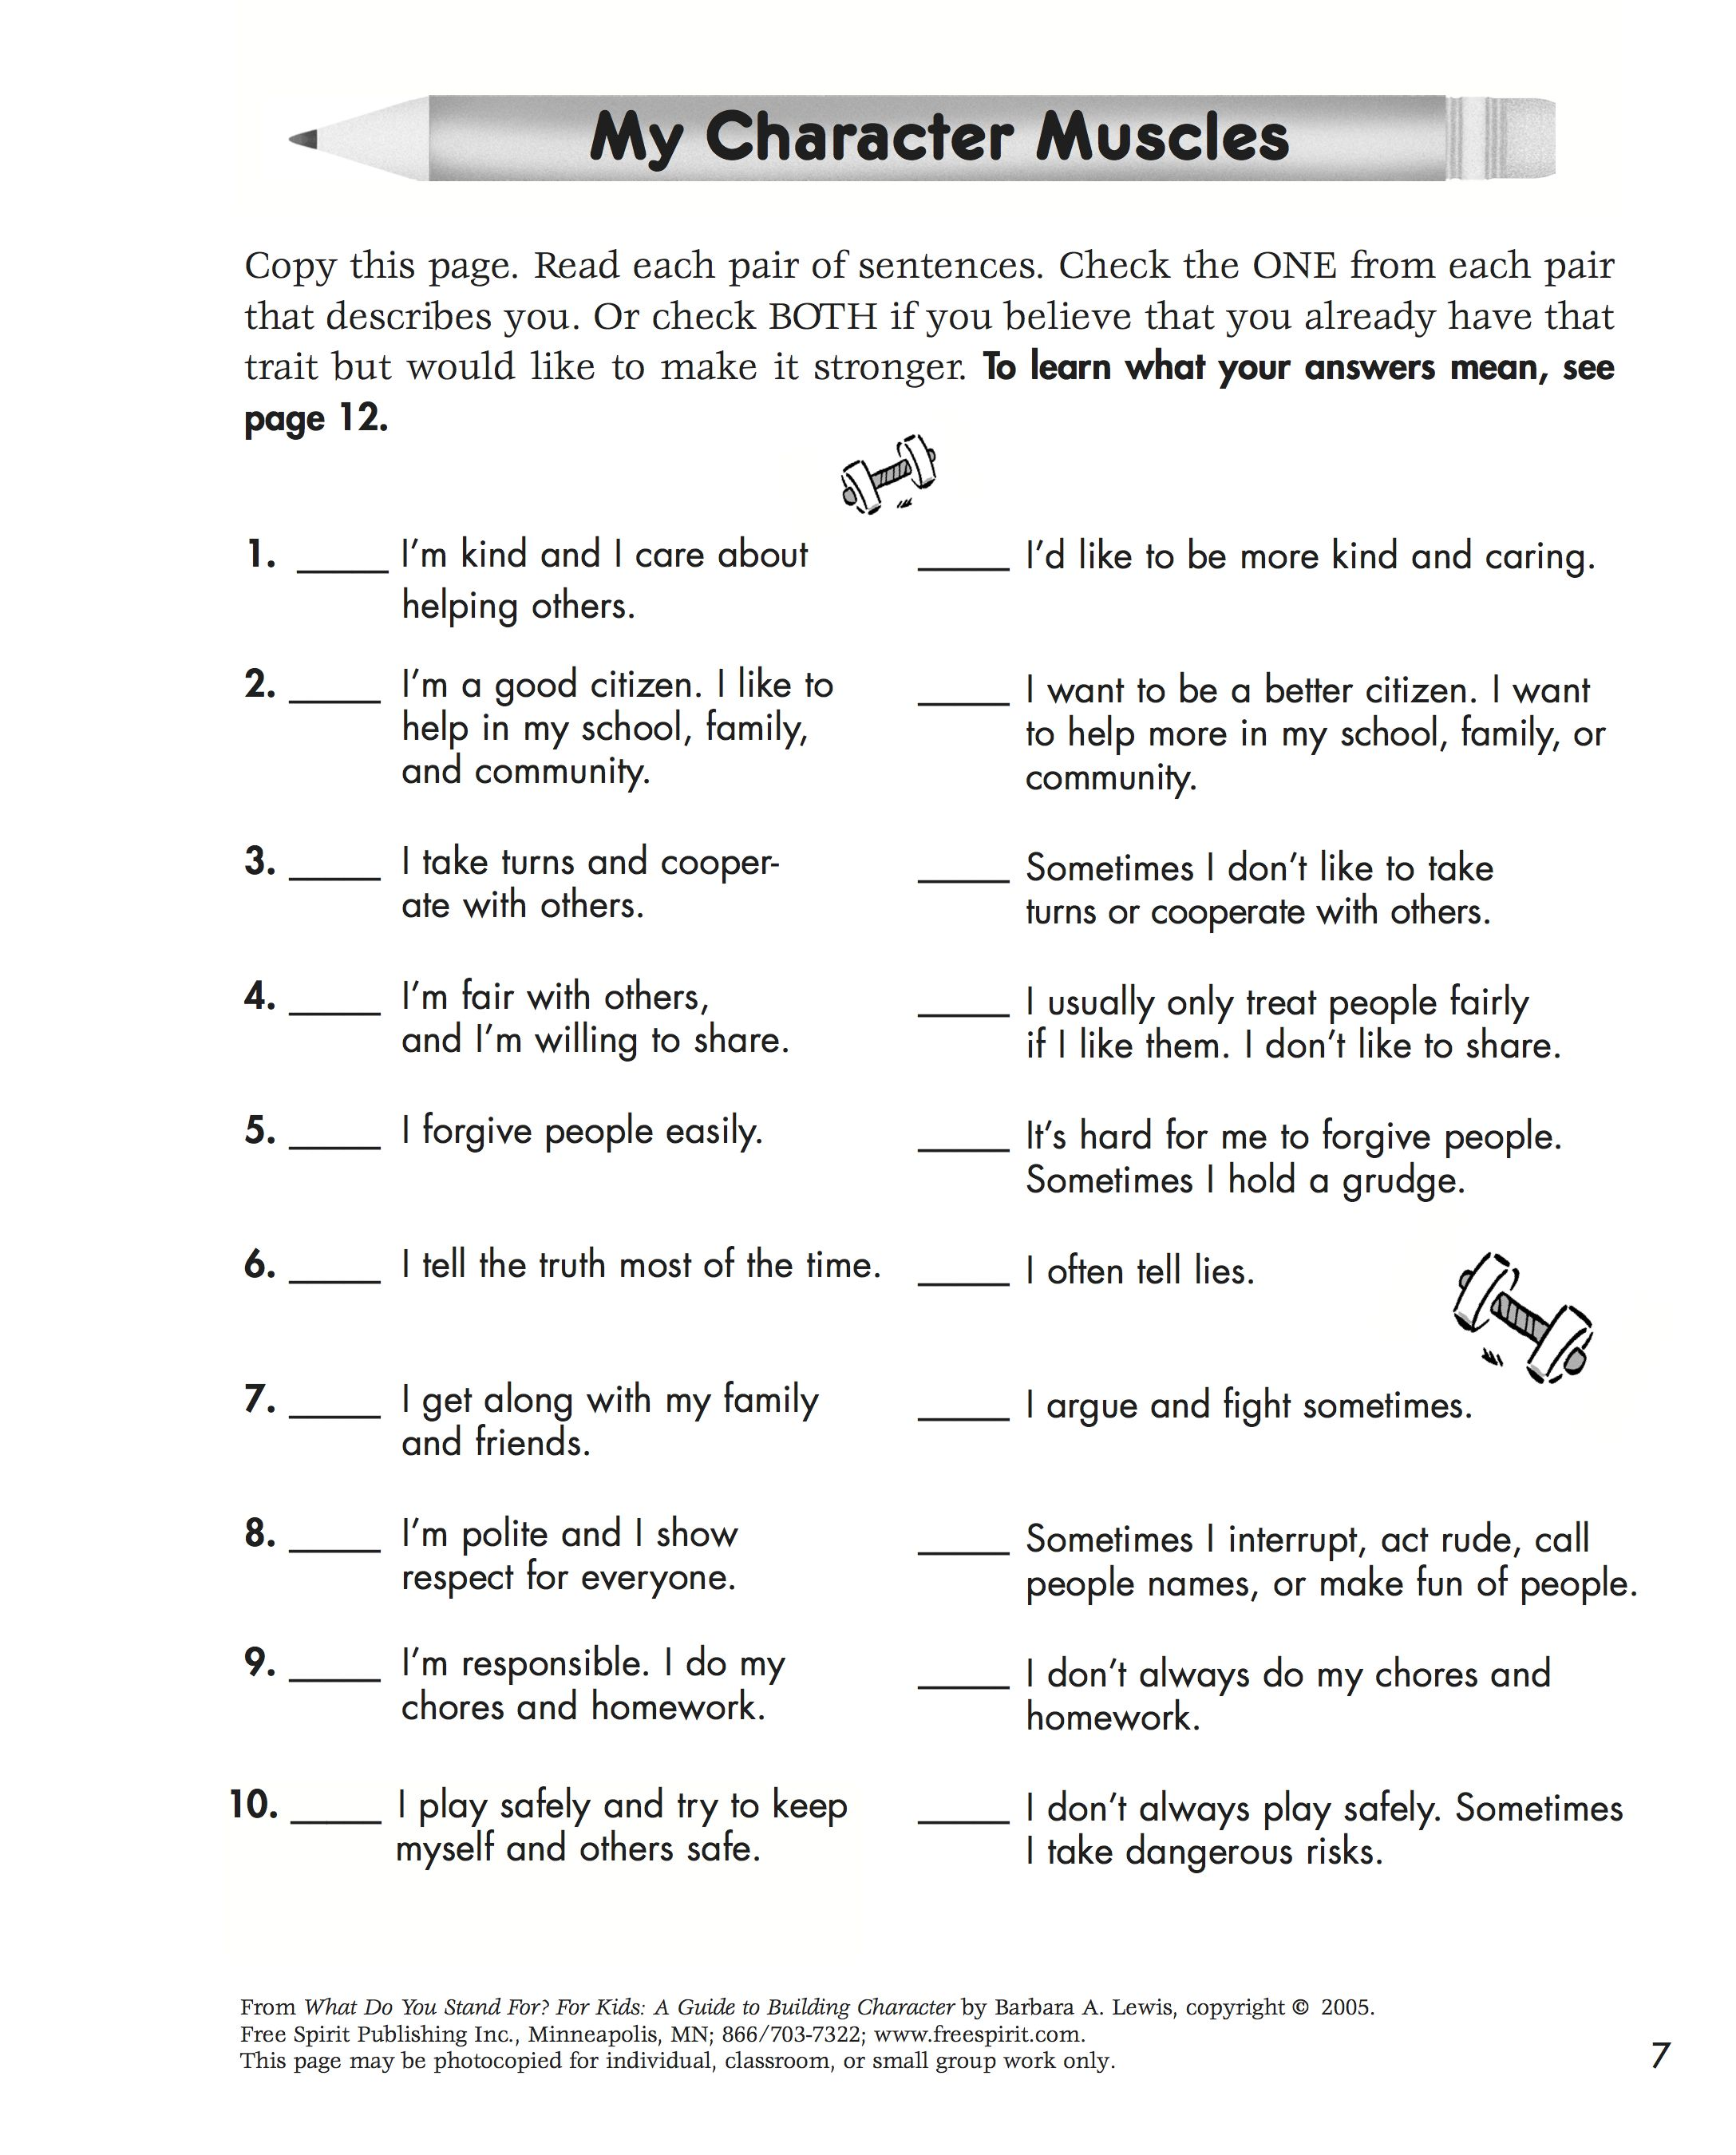 Free Printable Character Education Quiz To Help Kids Learn Which Character Traits They Have Room